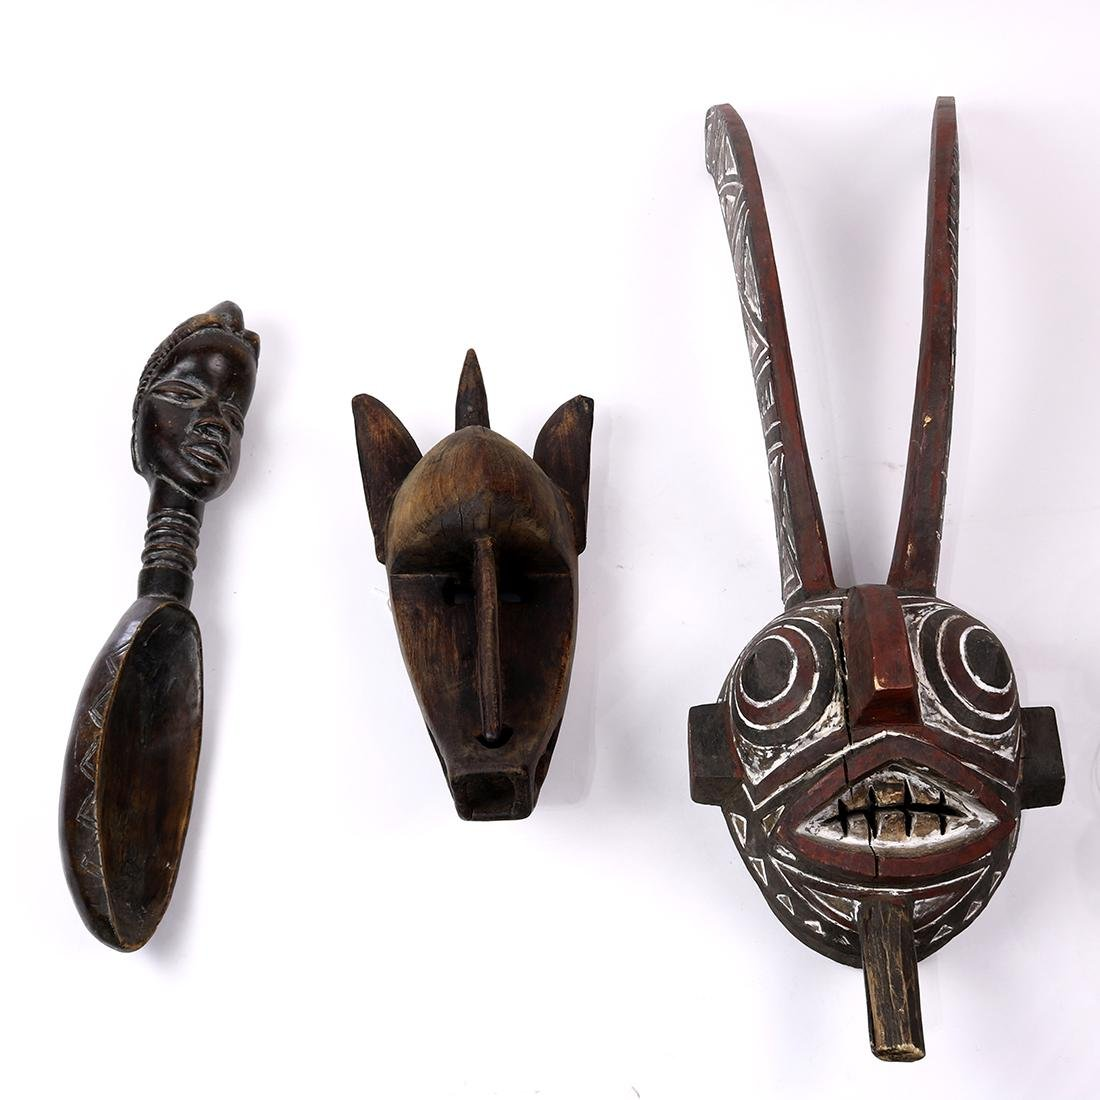 (lot of 3) Ethnographic tribal mask group,  consisting